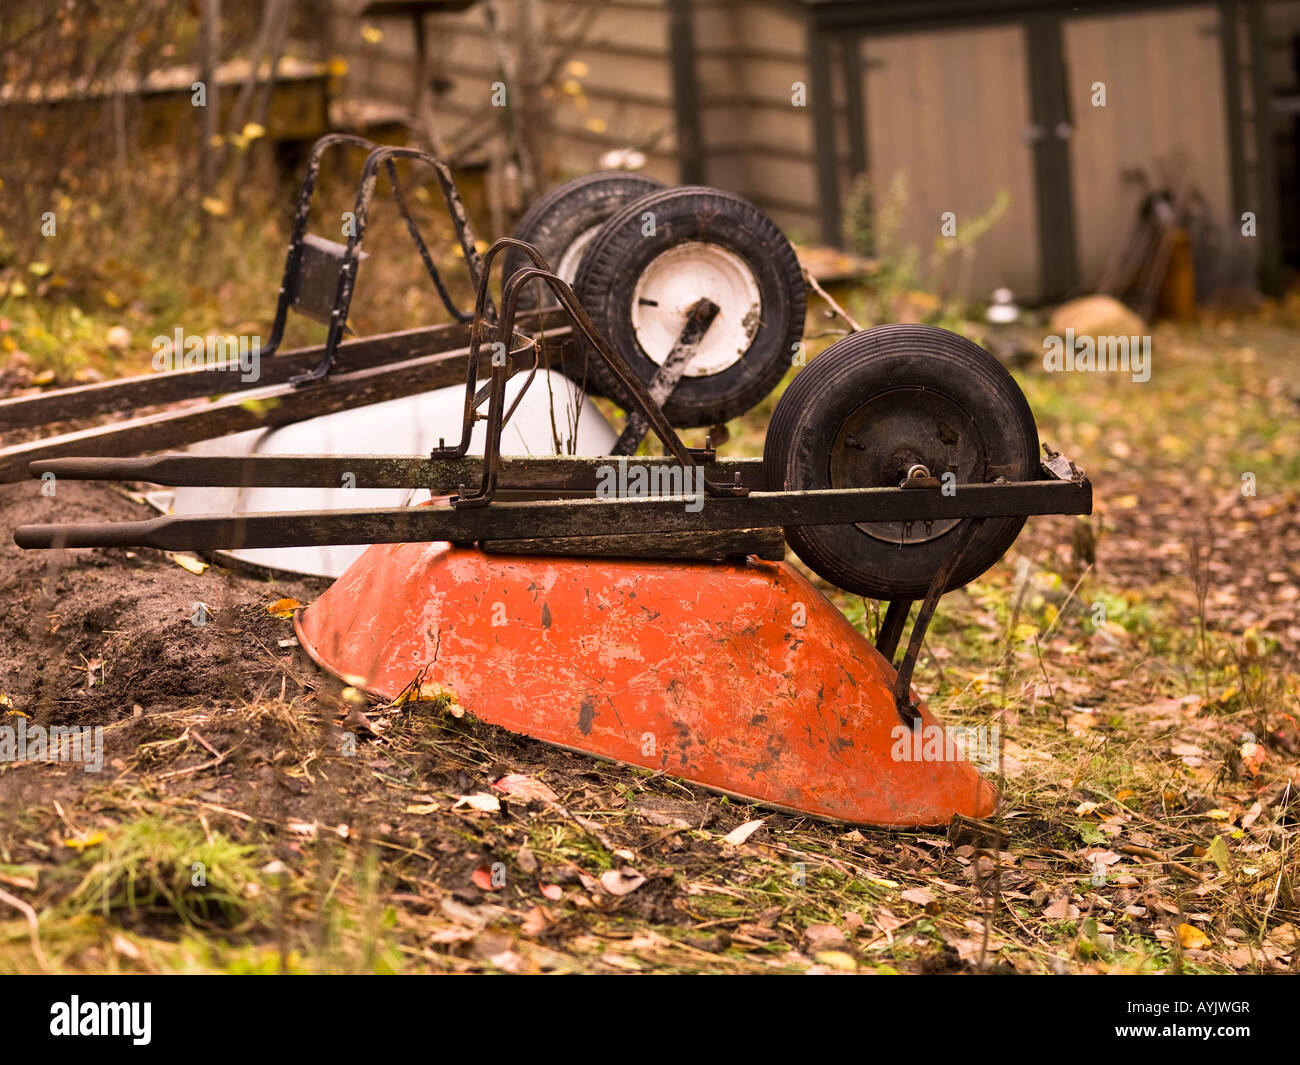 Two wheelbarrows - Stock Image